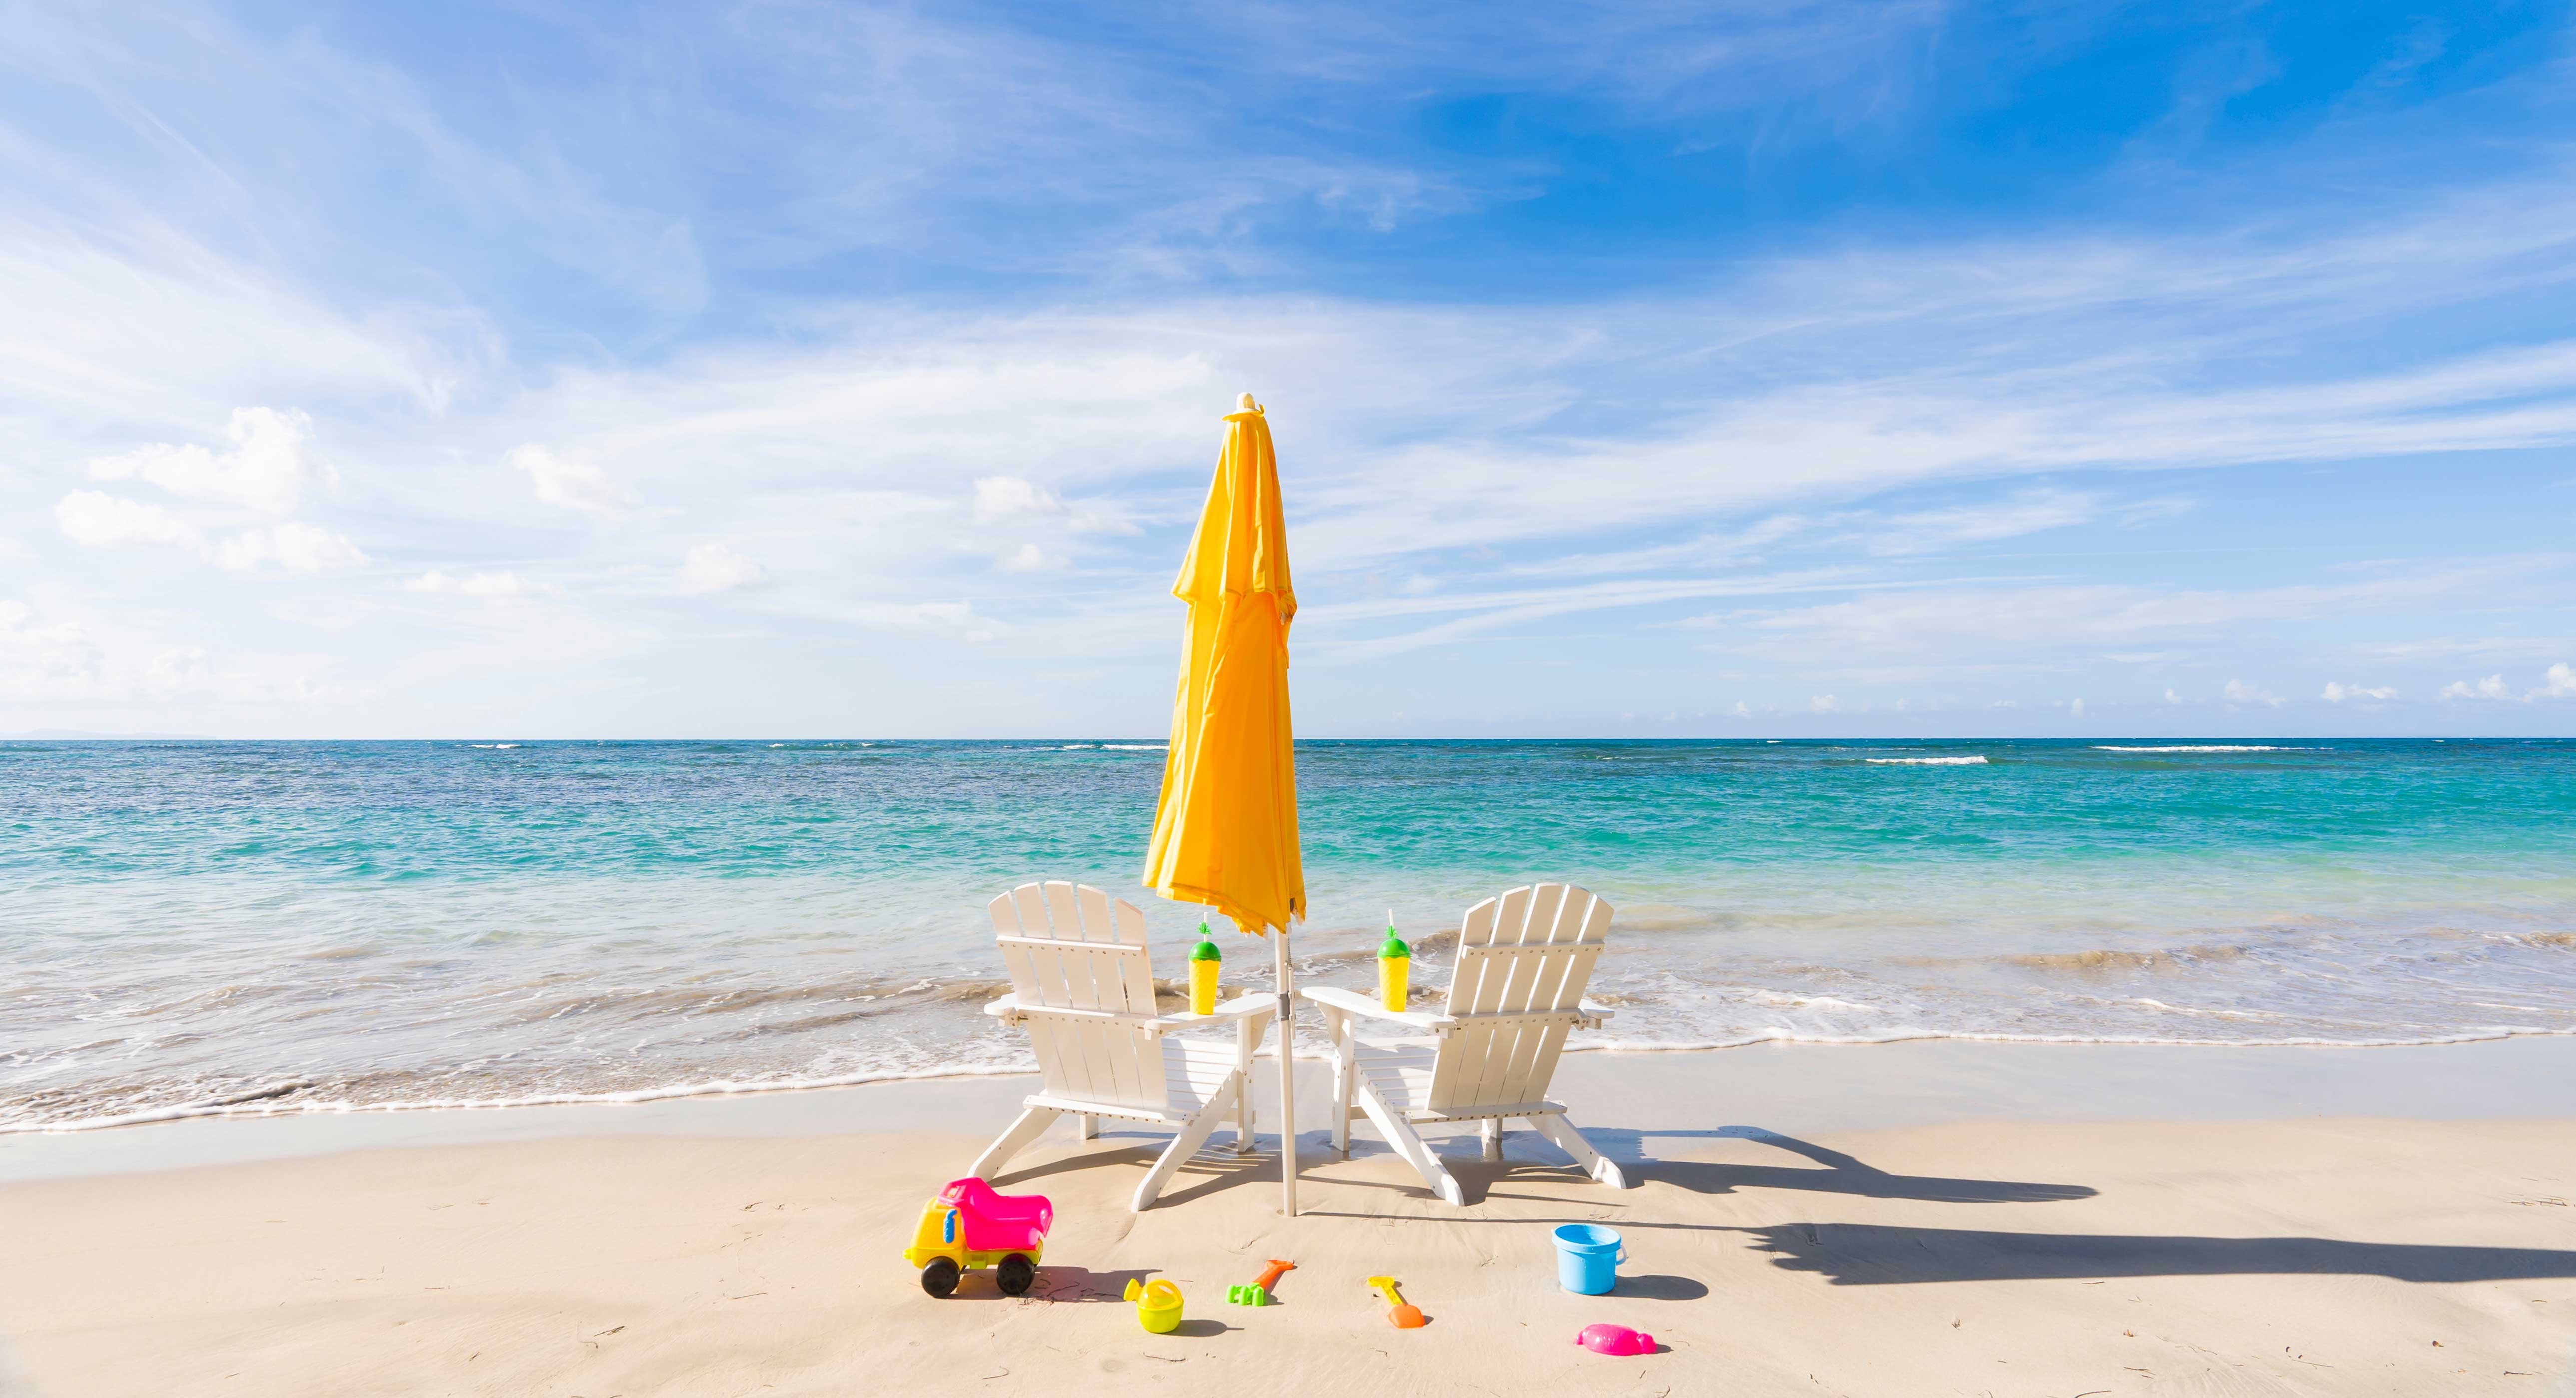 Sunbed and parasol on beach